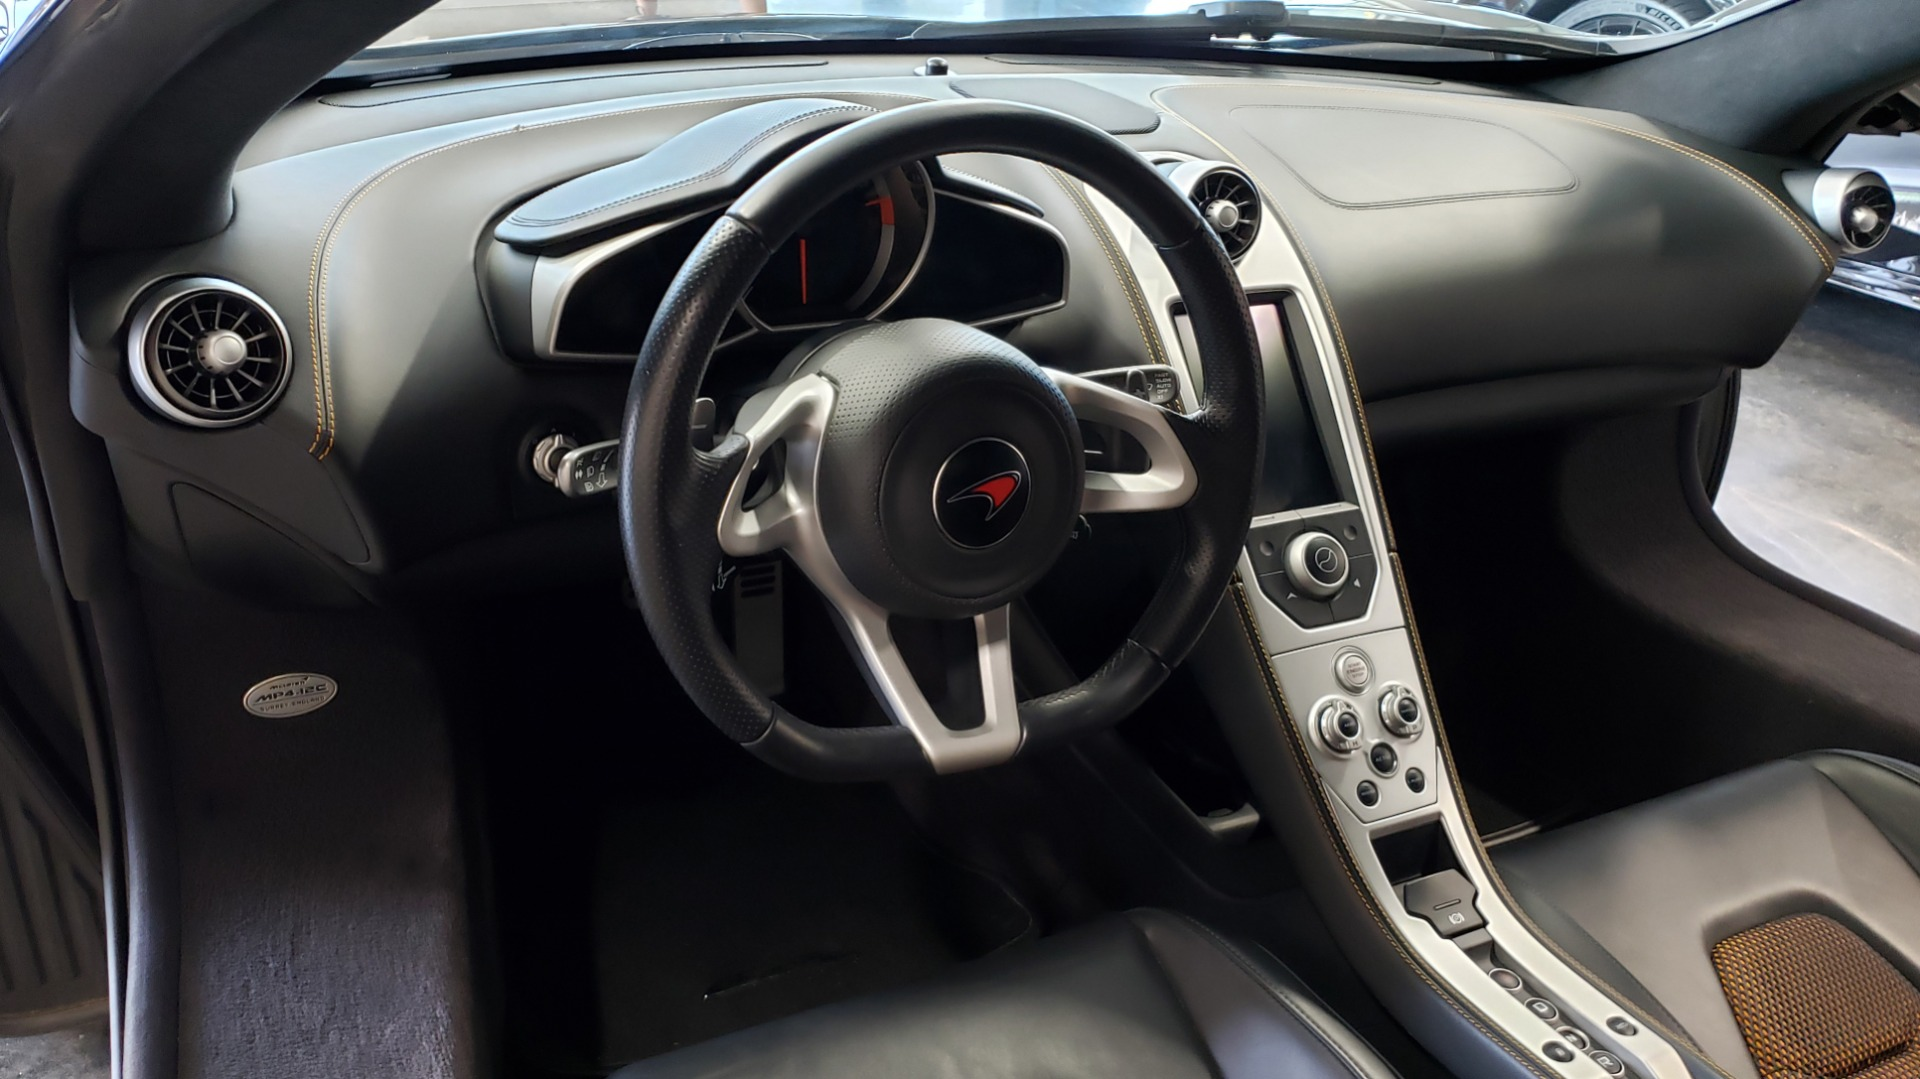 Used 2012 McLaren MP4-12C COUPE / 3.8 L V8 592HP / AUTO / NAV / CCB / LOW MILES for sale $97,999 at Formula Imports in Charlotte NC 28227 44